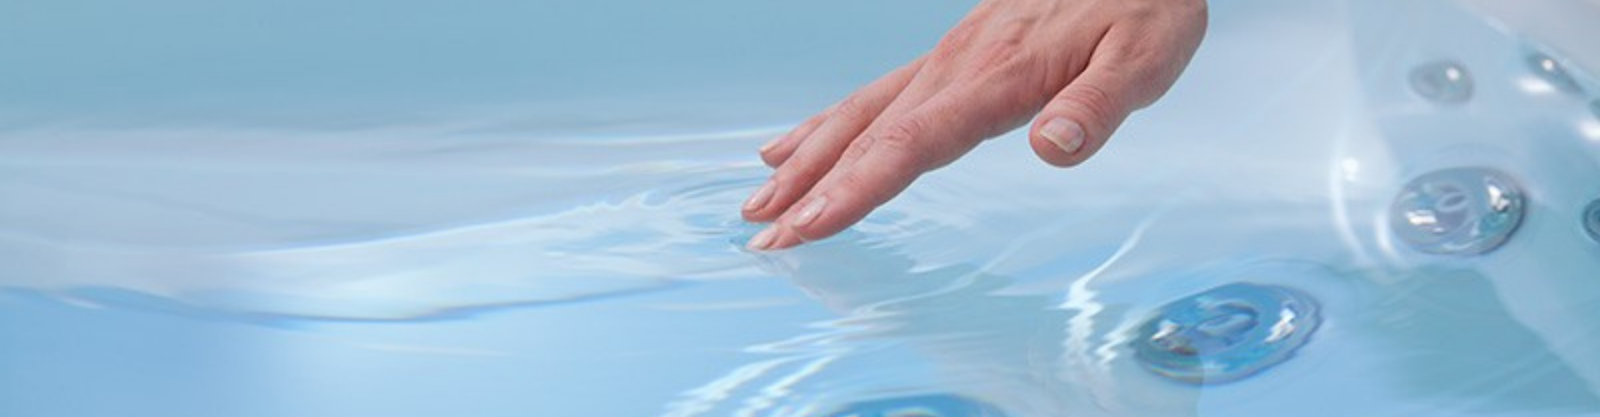 How to Get Rid of Algae, Mold, and Mildew In Your Hot Tub